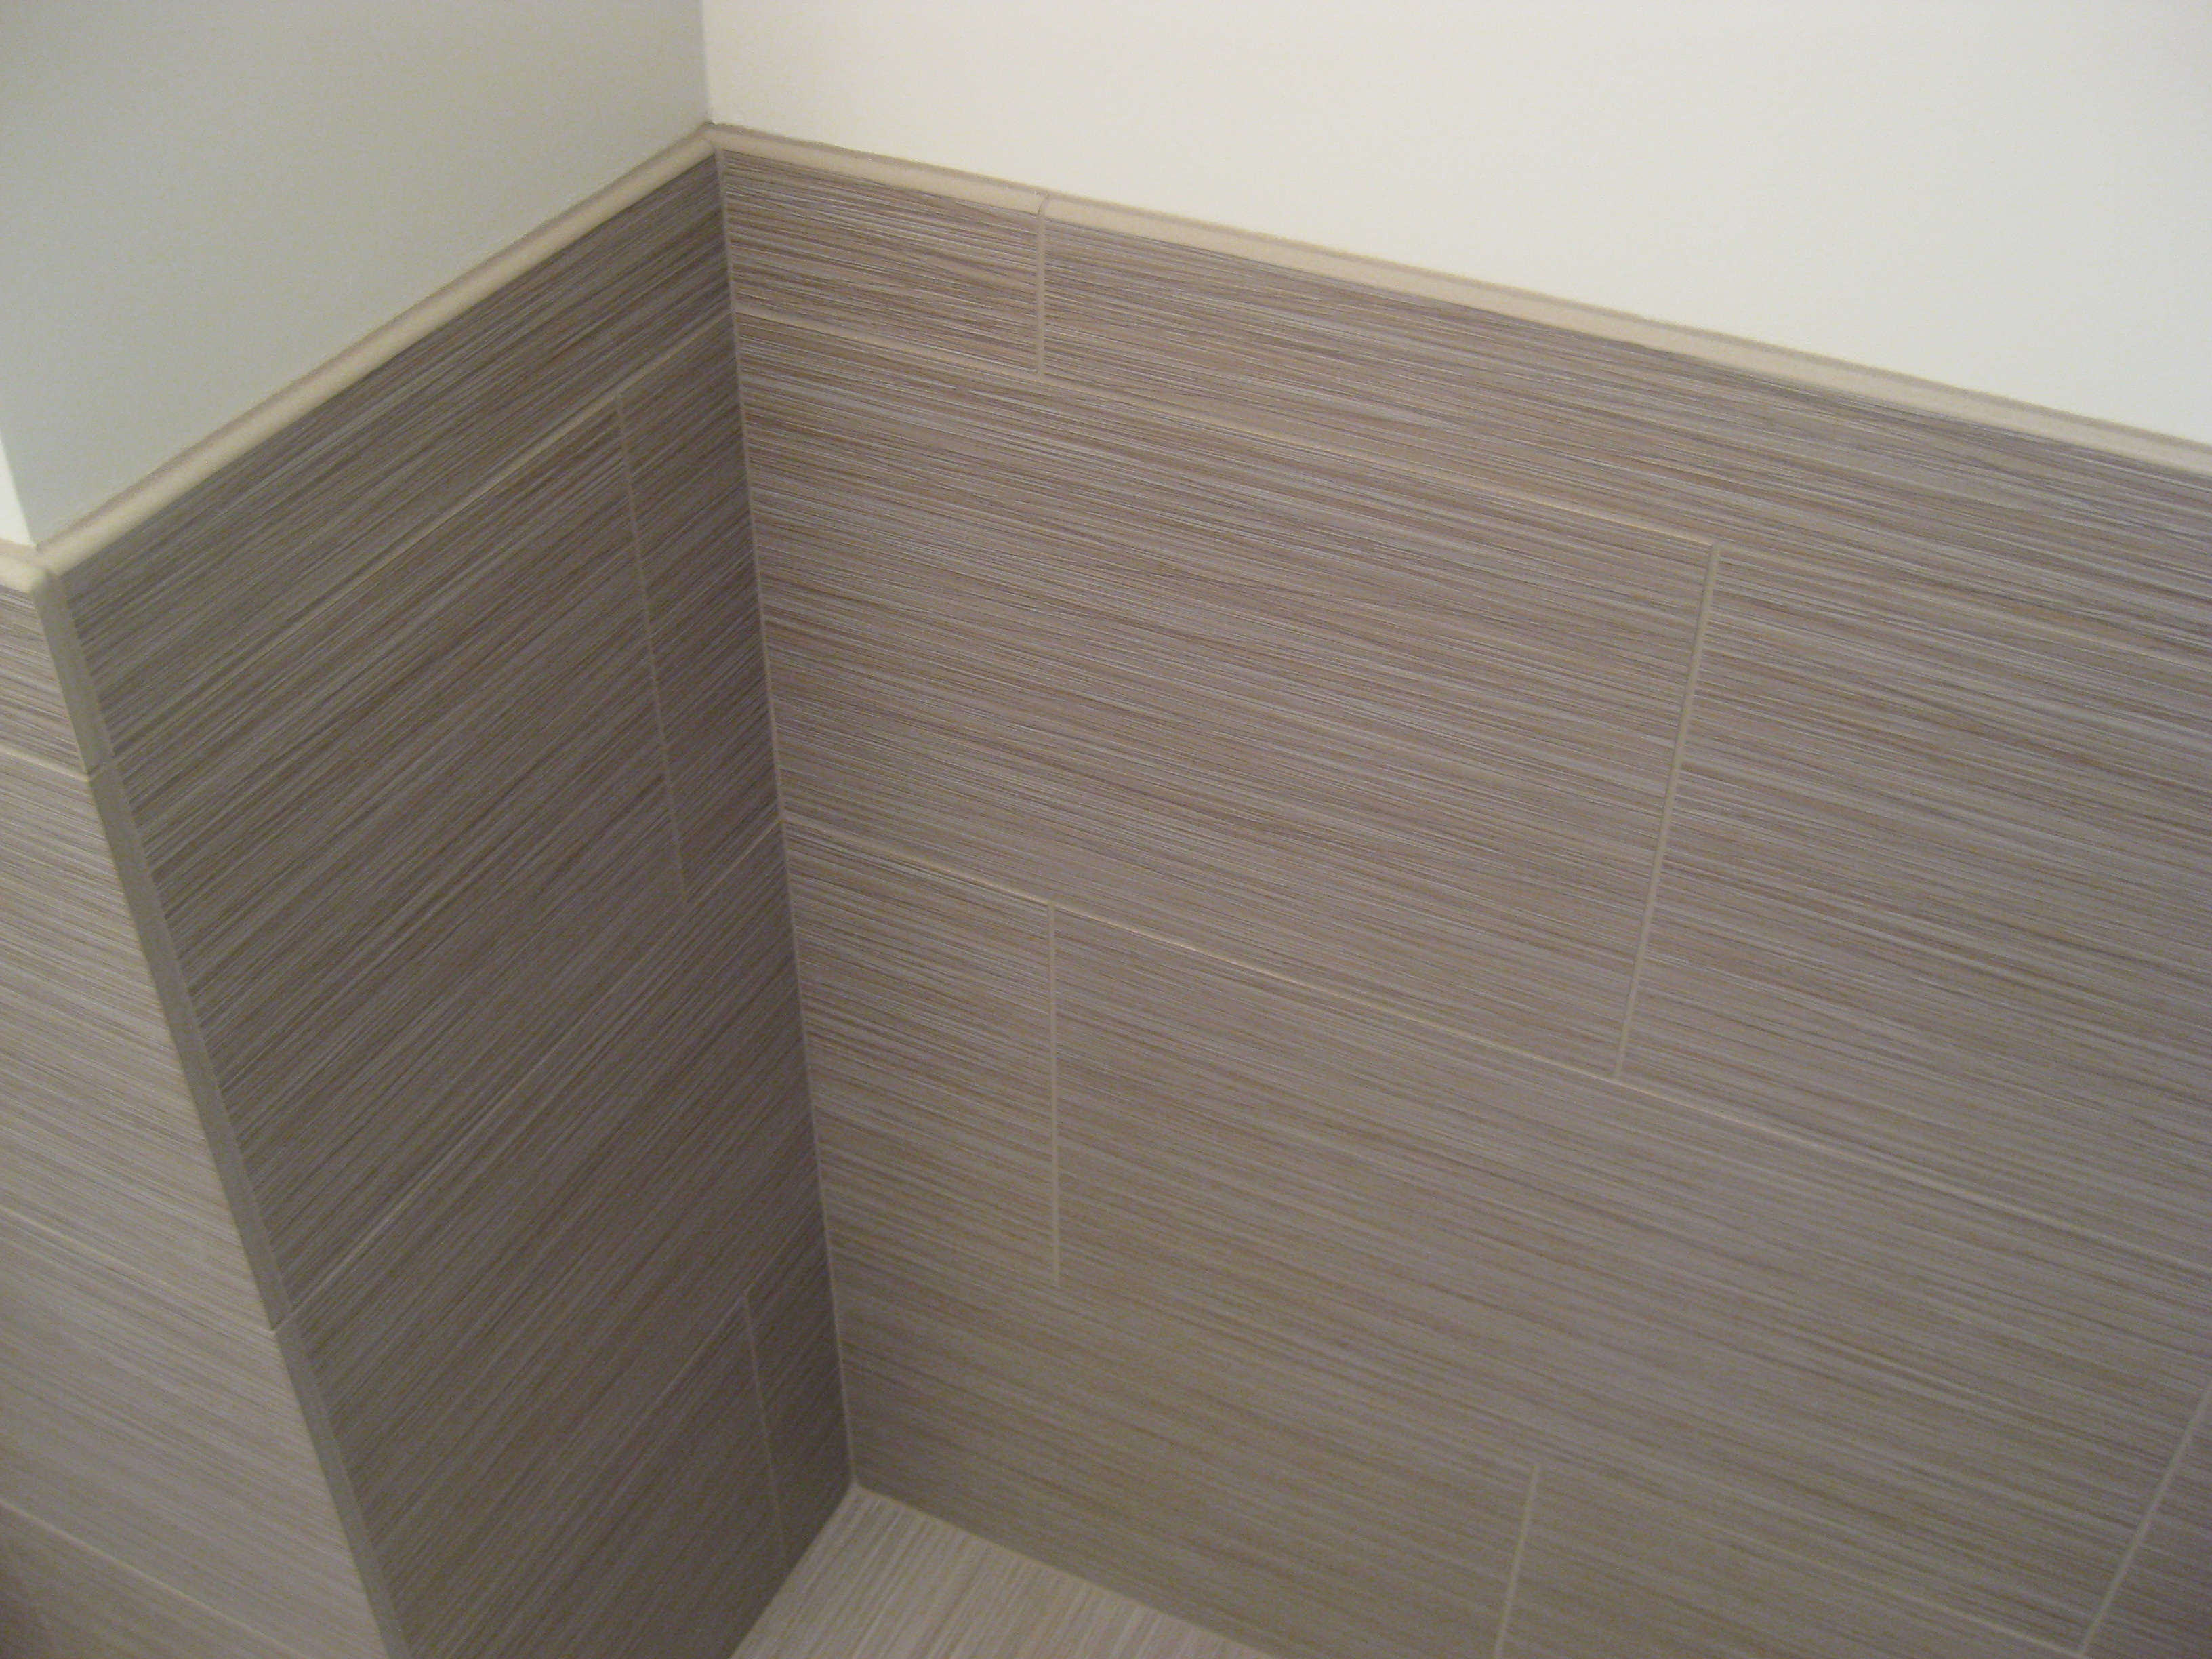 Square Baseboard Molding for restroom